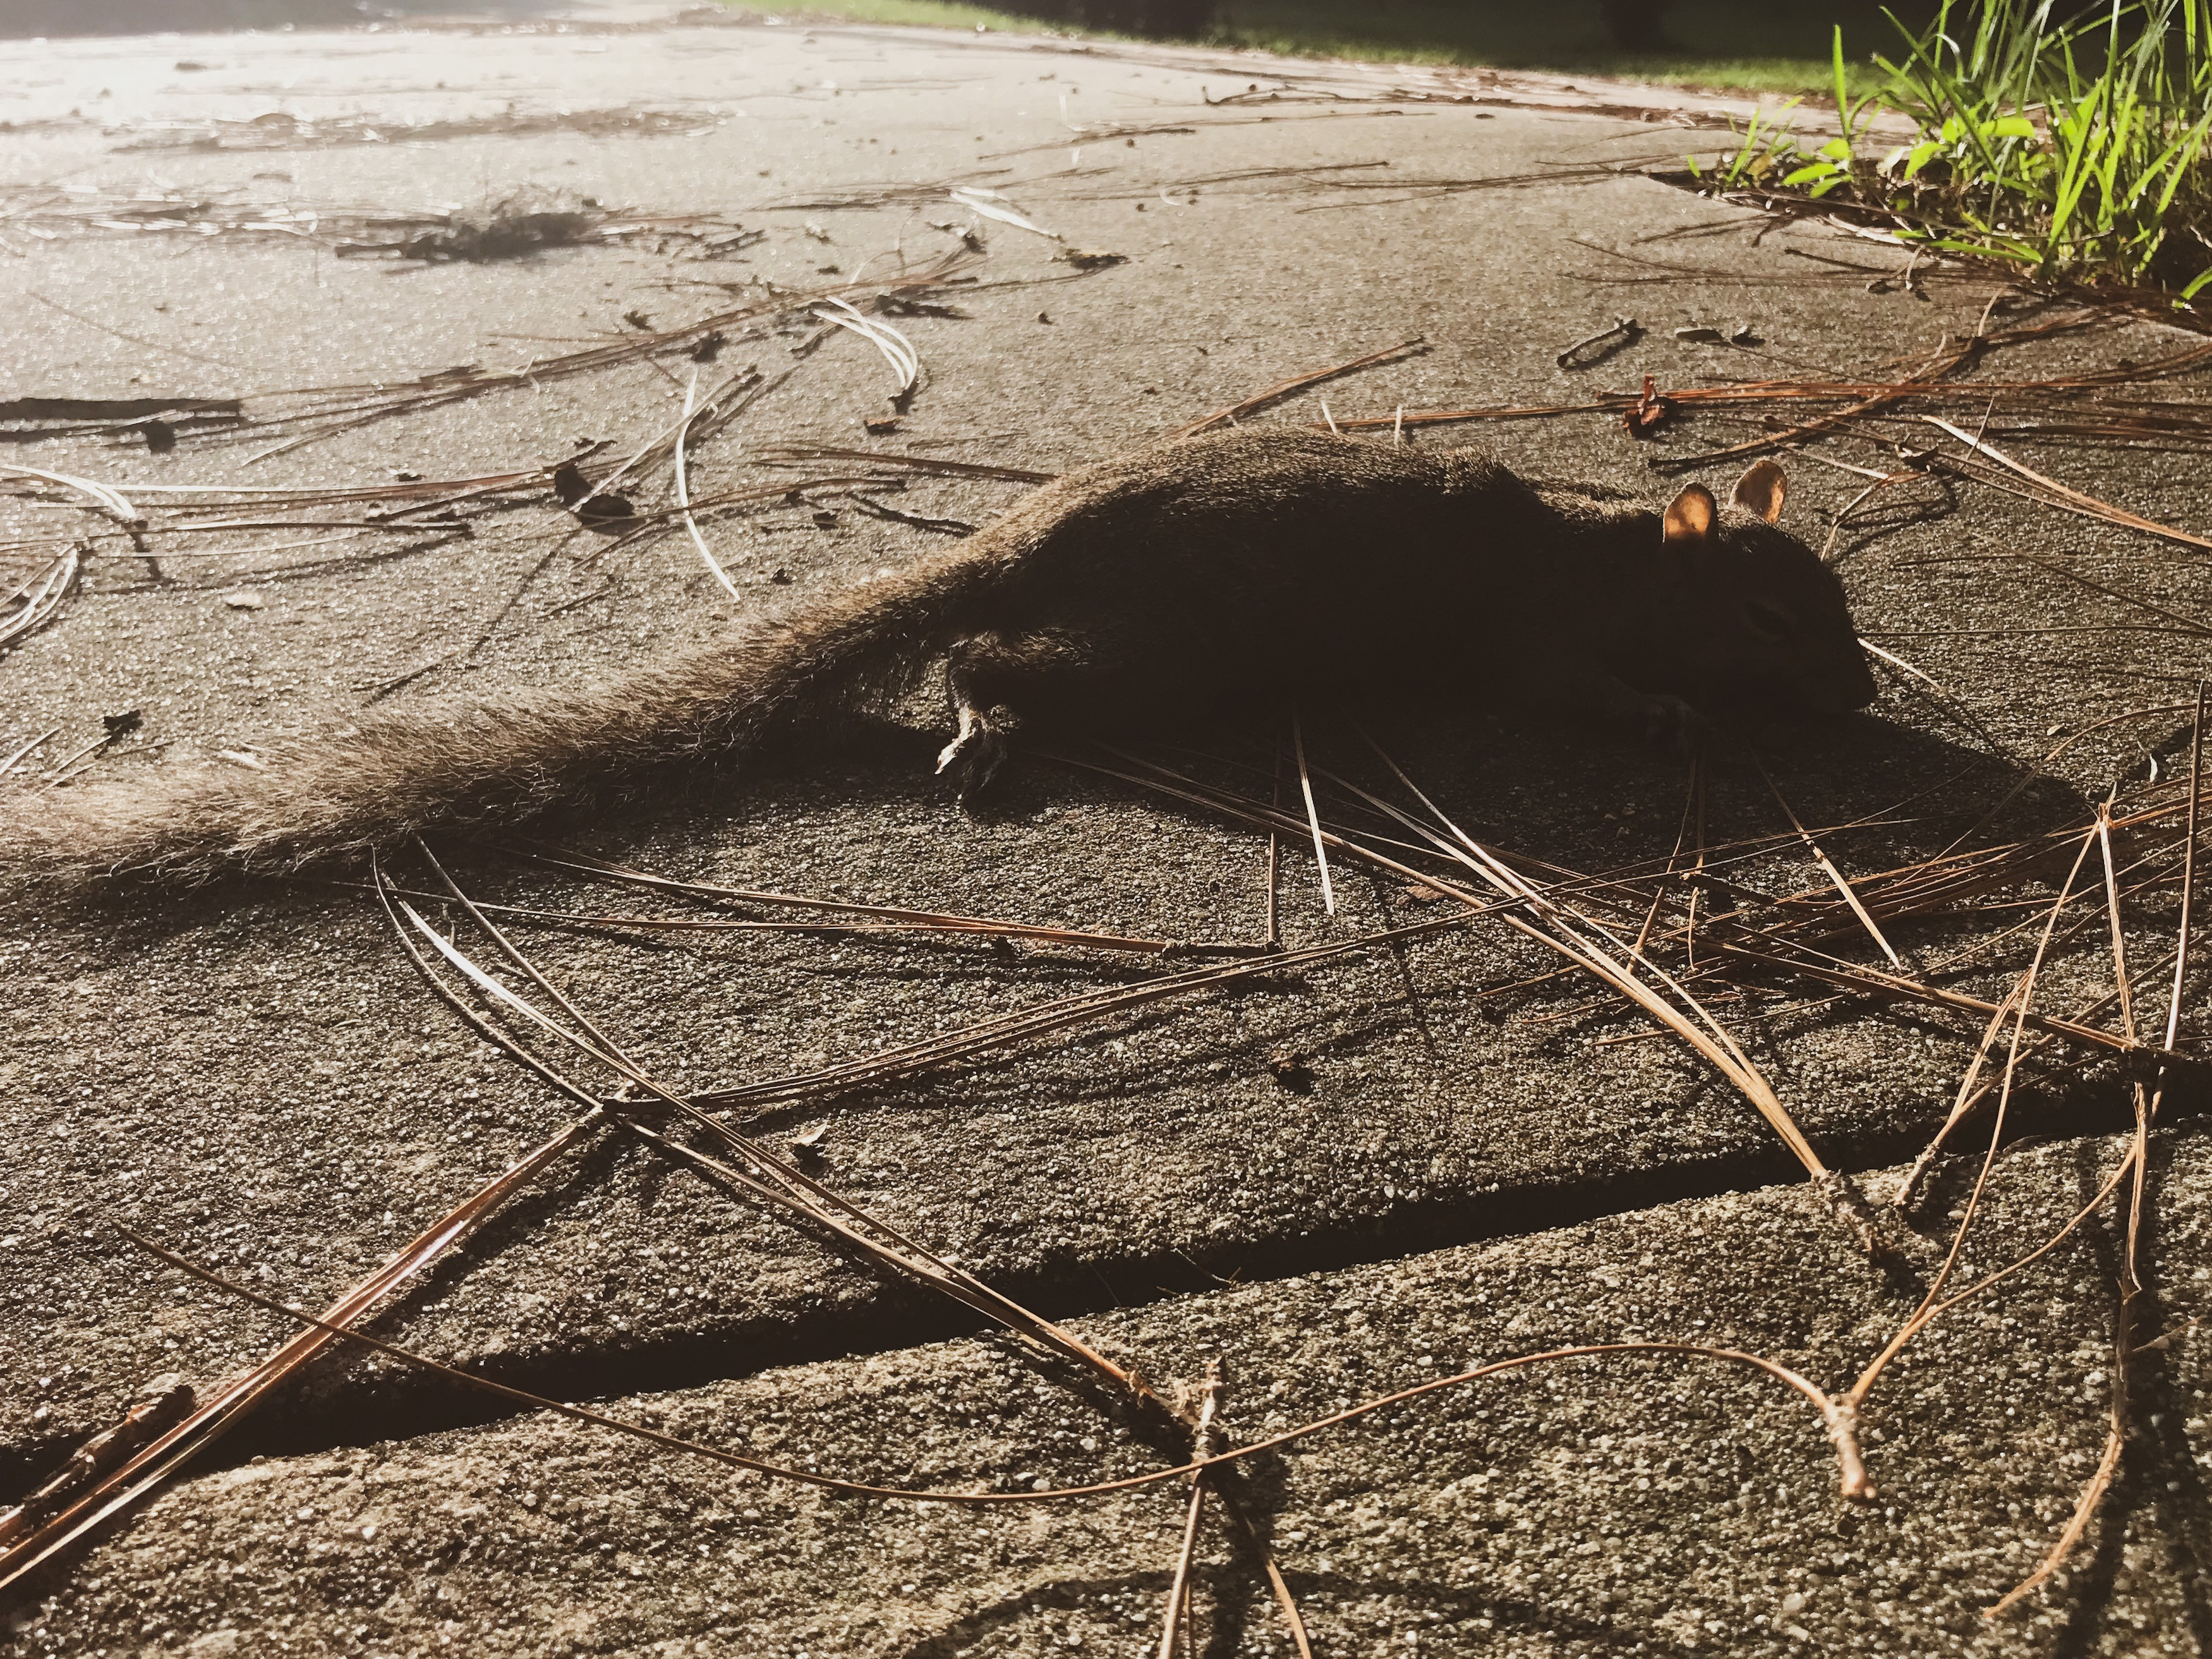 A squirrel laying expired on concrete among pine needles, its eyes open and light shining through its gossamer ears.